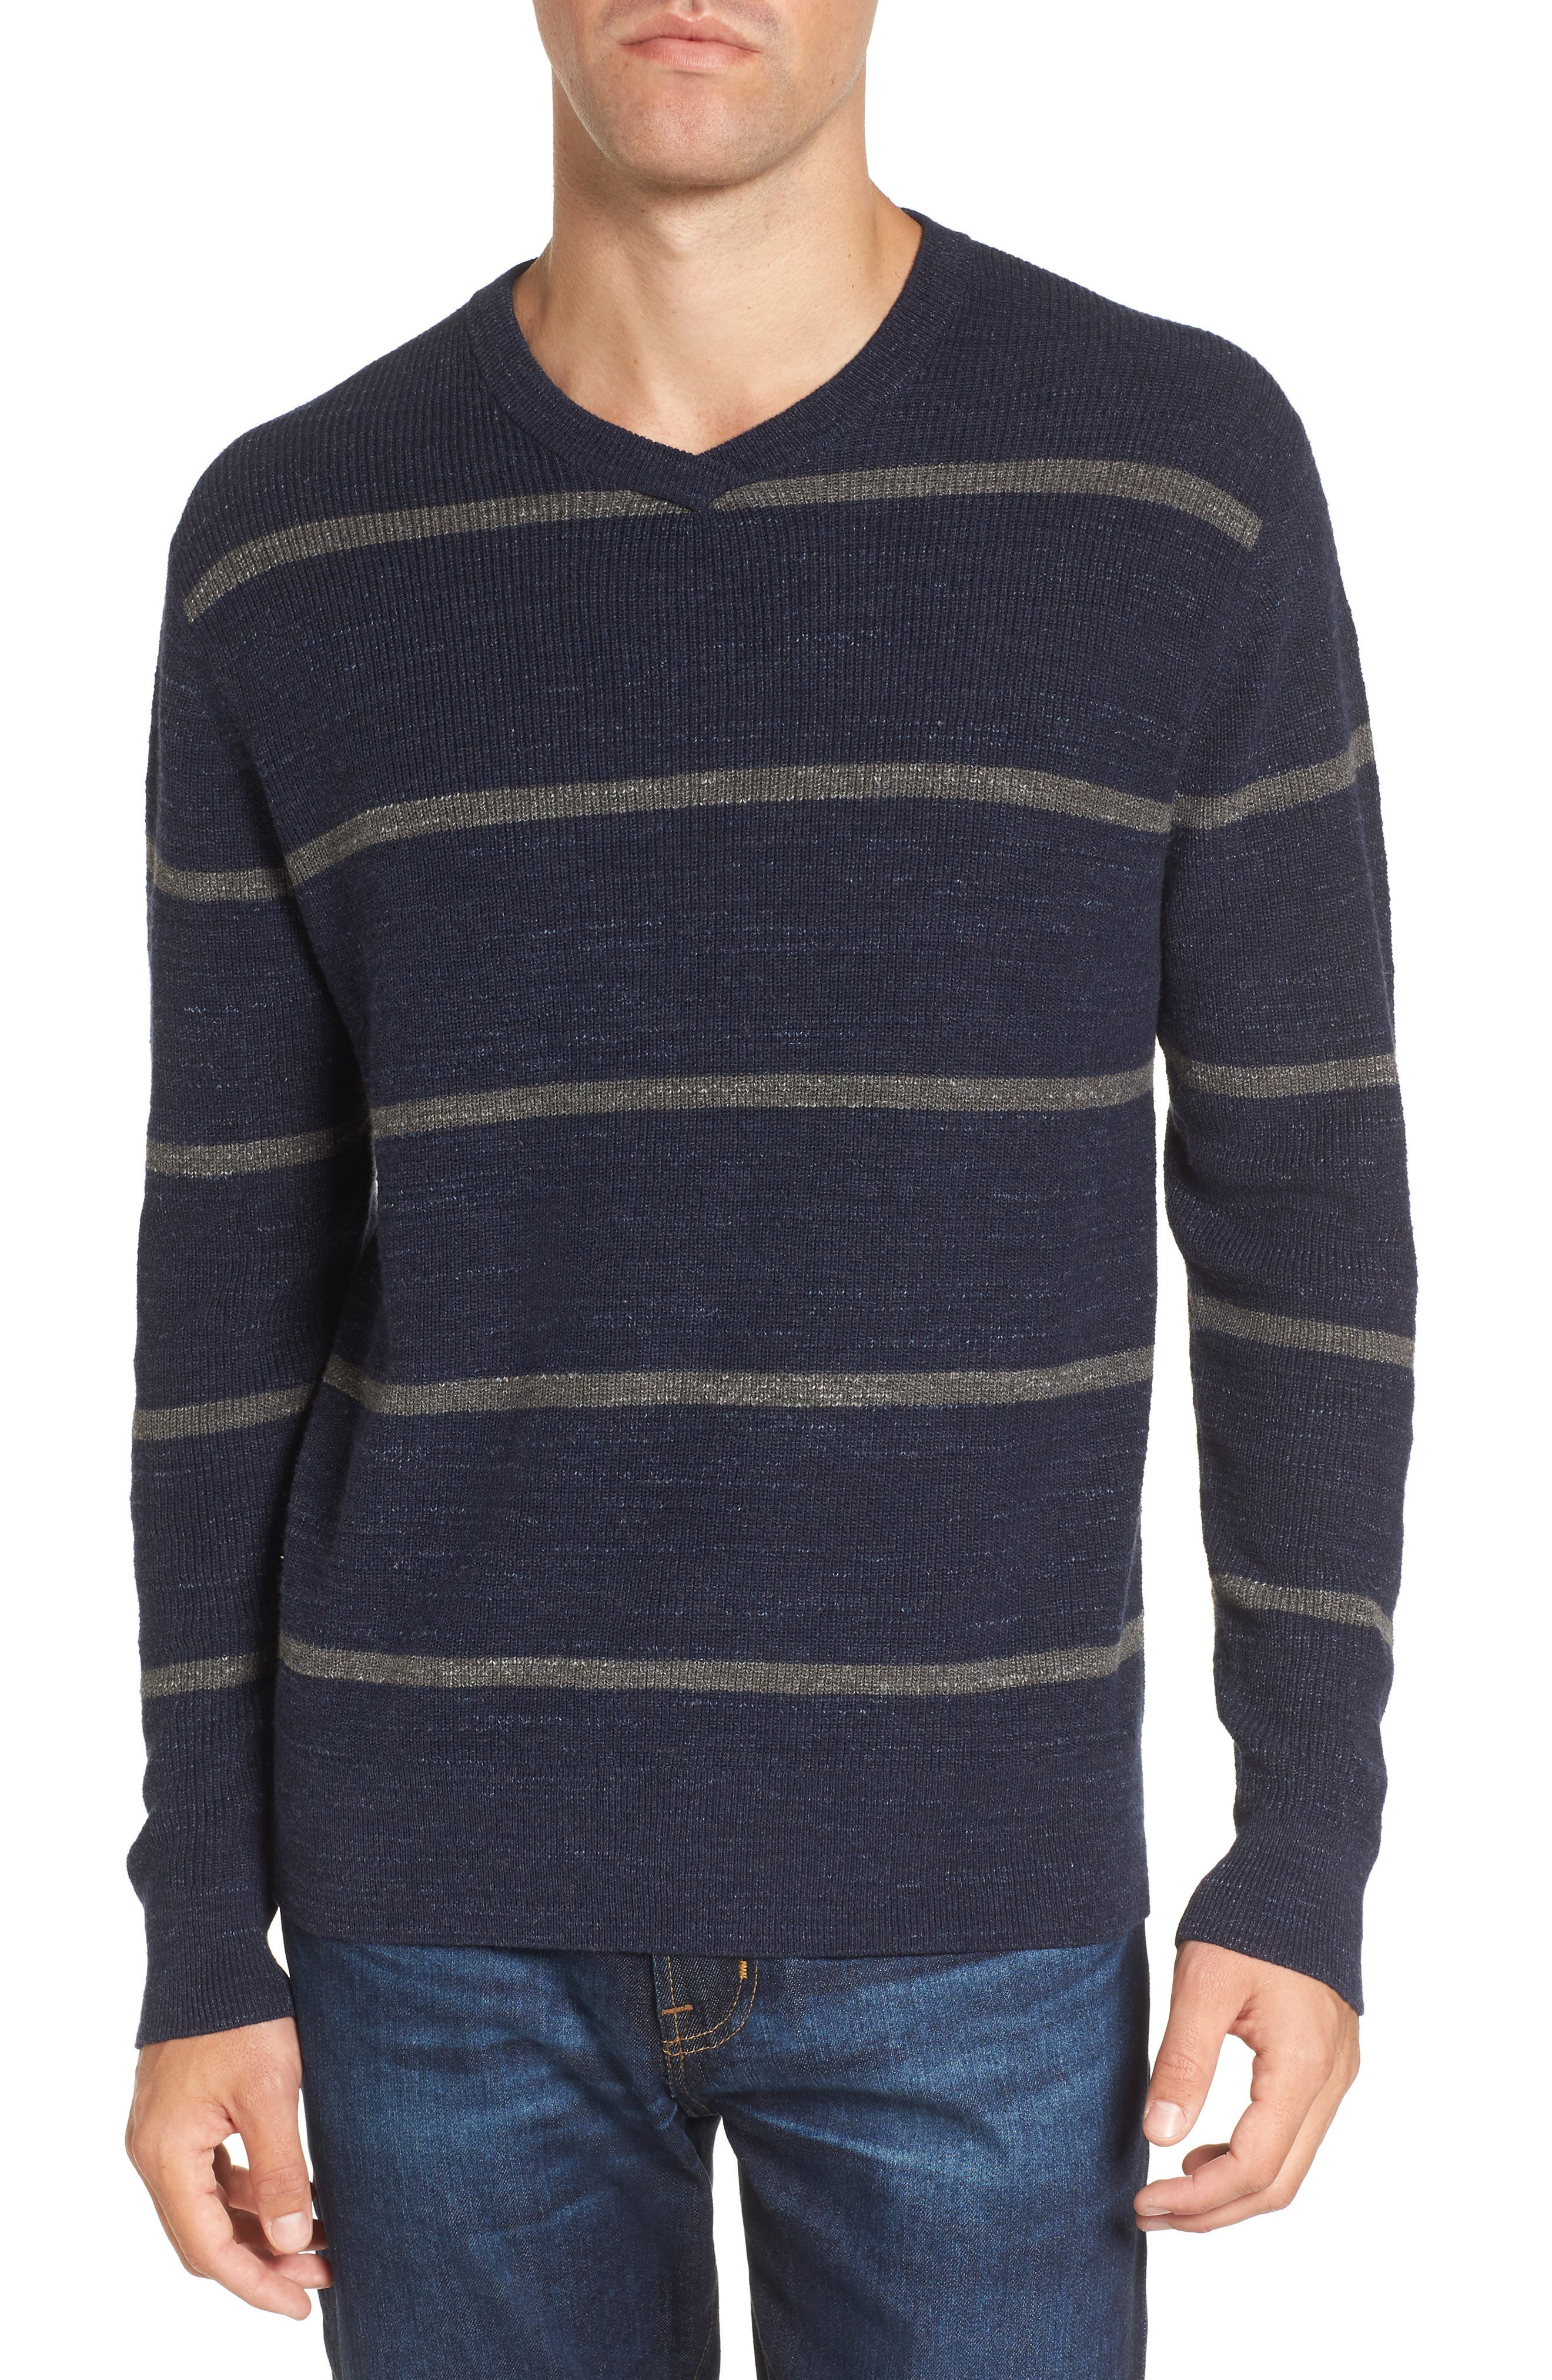 Ardsley Stripe V-Neck Sweater,                             Main thumbnail 1, color,                             Navy/Light Charcoal